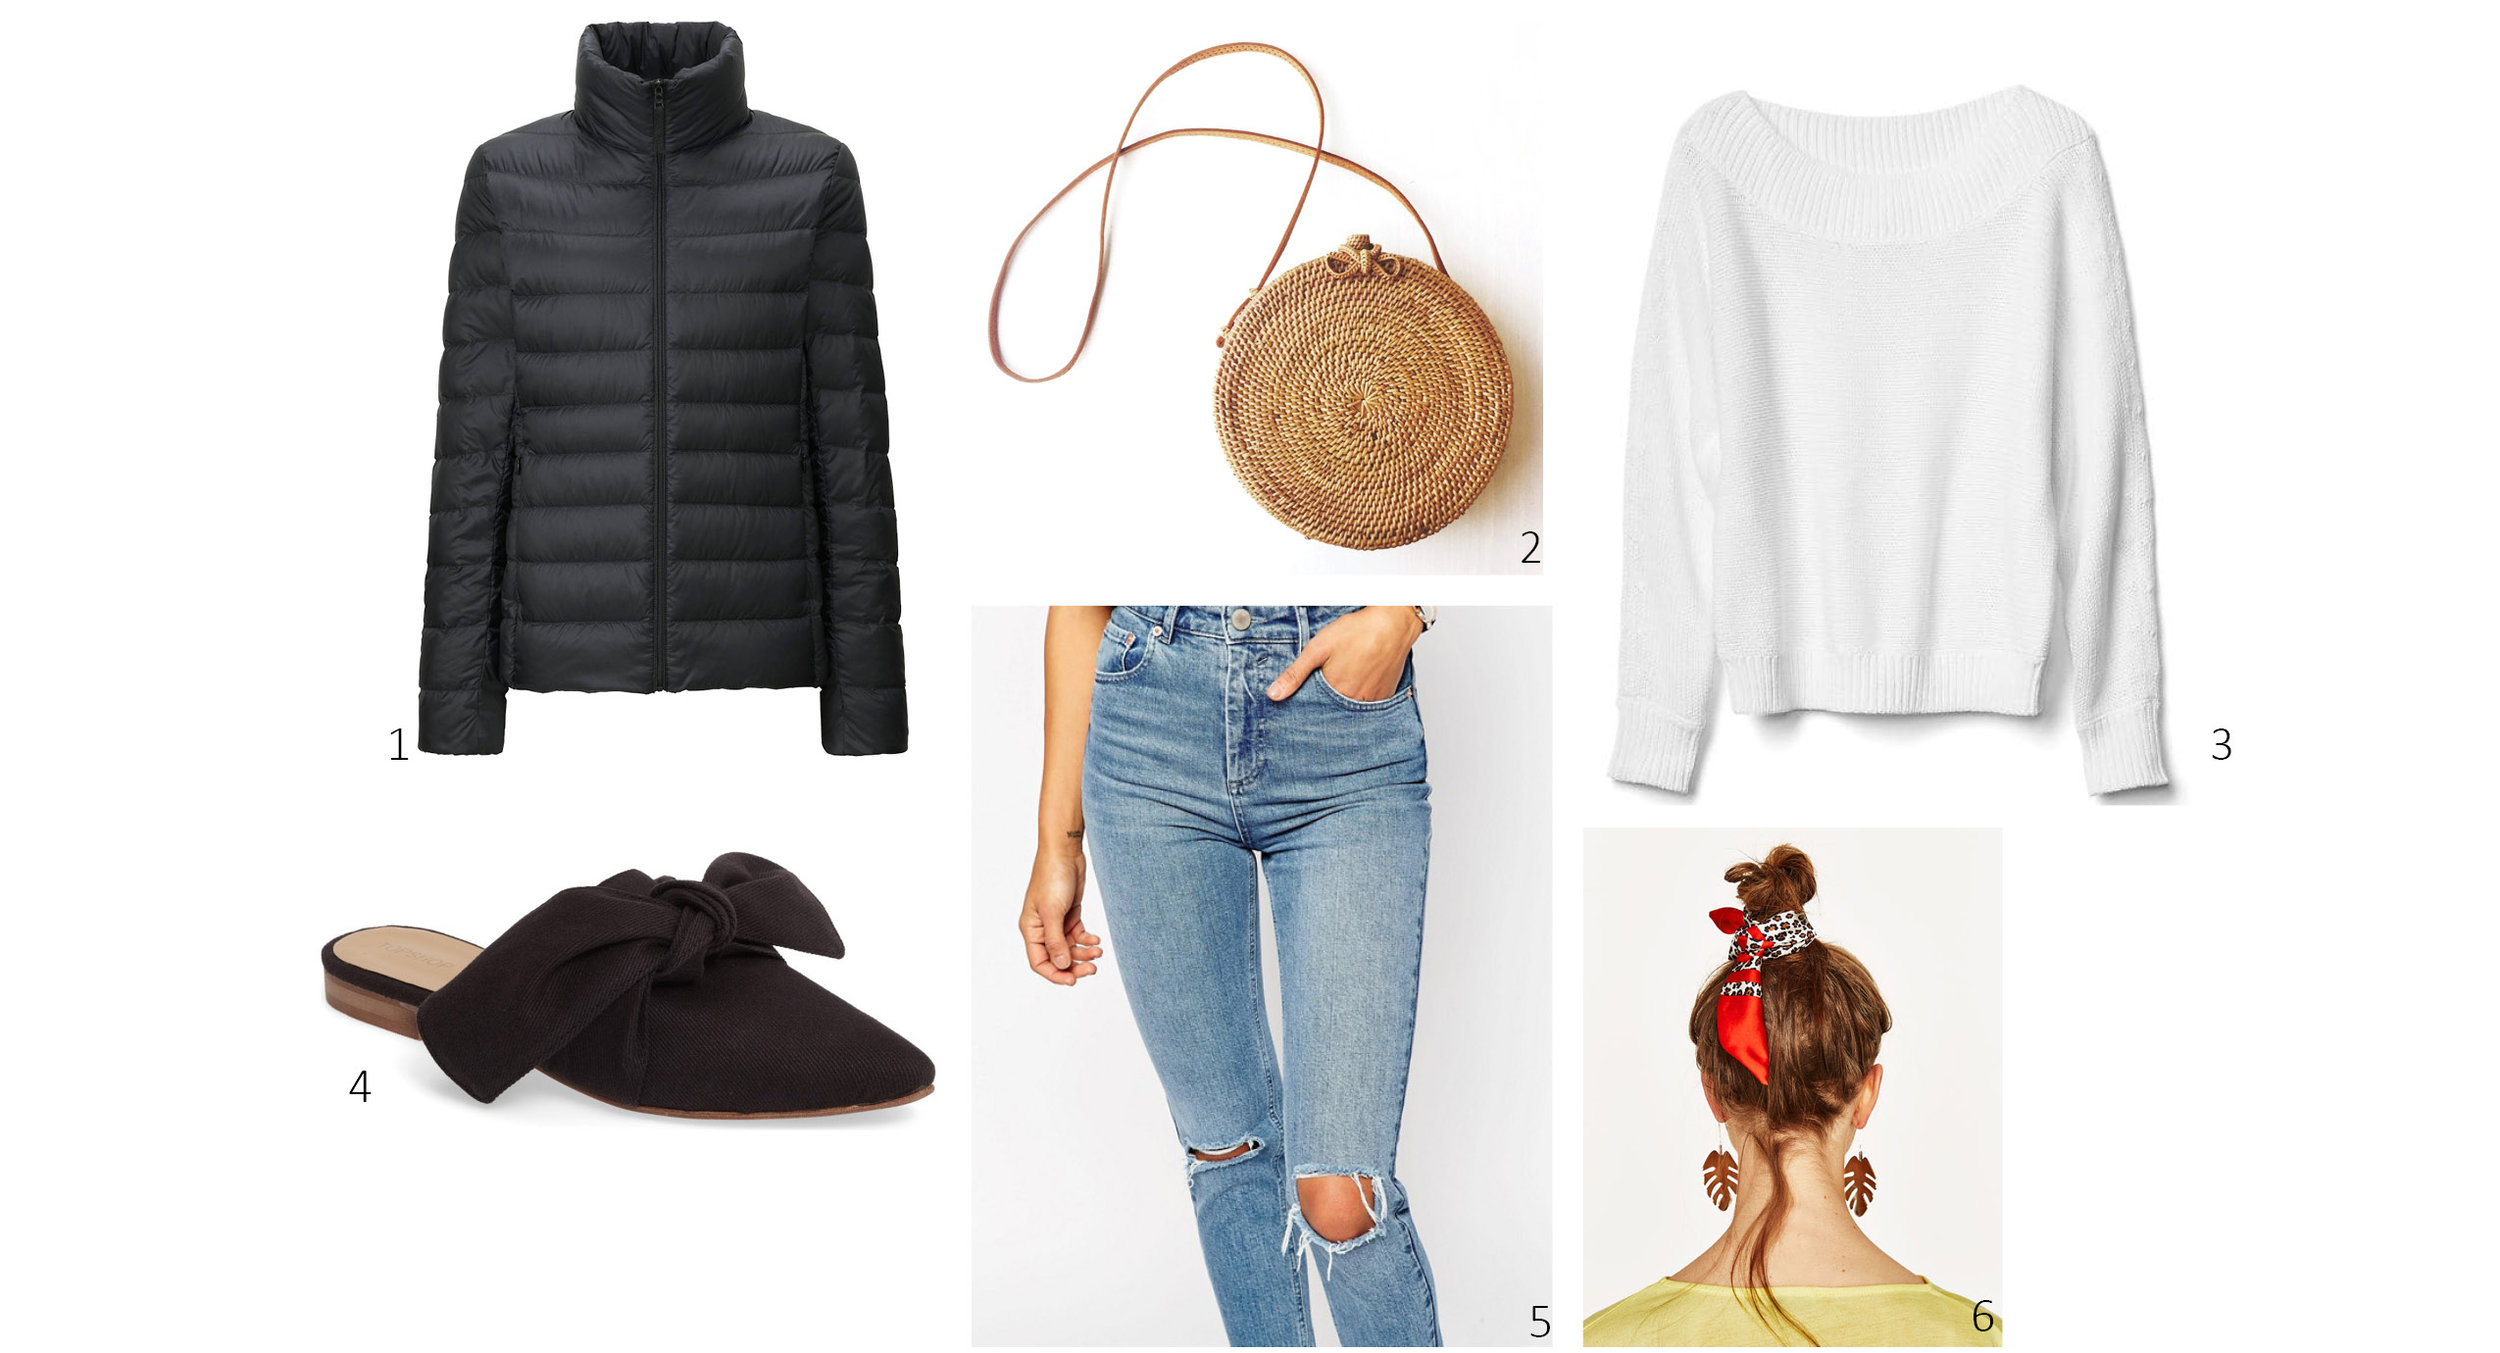 1.  Uniqlo Ultra Light Down Jacket $59; 2.  Bembien Rose Bag $185; 3.  Gap Relaxed Open-Neck Sweater  $29; 4.  Topshop Adele Bow Flat  $45; 5.  ASOS Farleigh Mom Jeans  $56; 6.  Zara Scarf Pack  $16